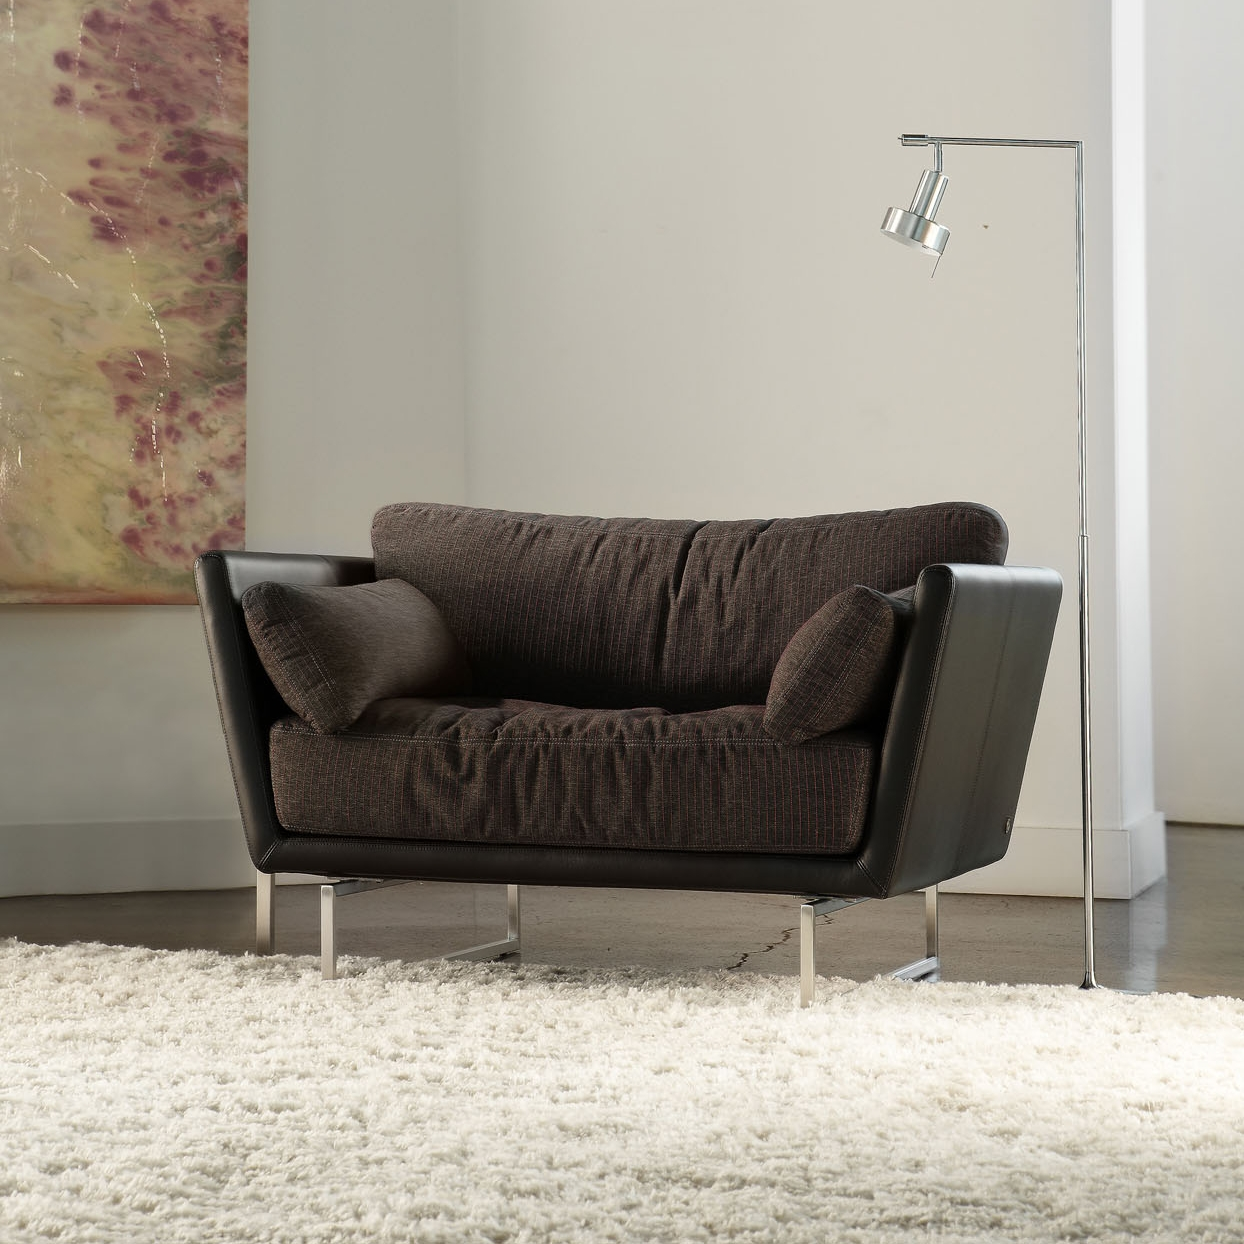 Sofas & Sectionals | Modern Seating | Contemporary Design Intended For Sofas And Sectionals (Image 18 of 20)